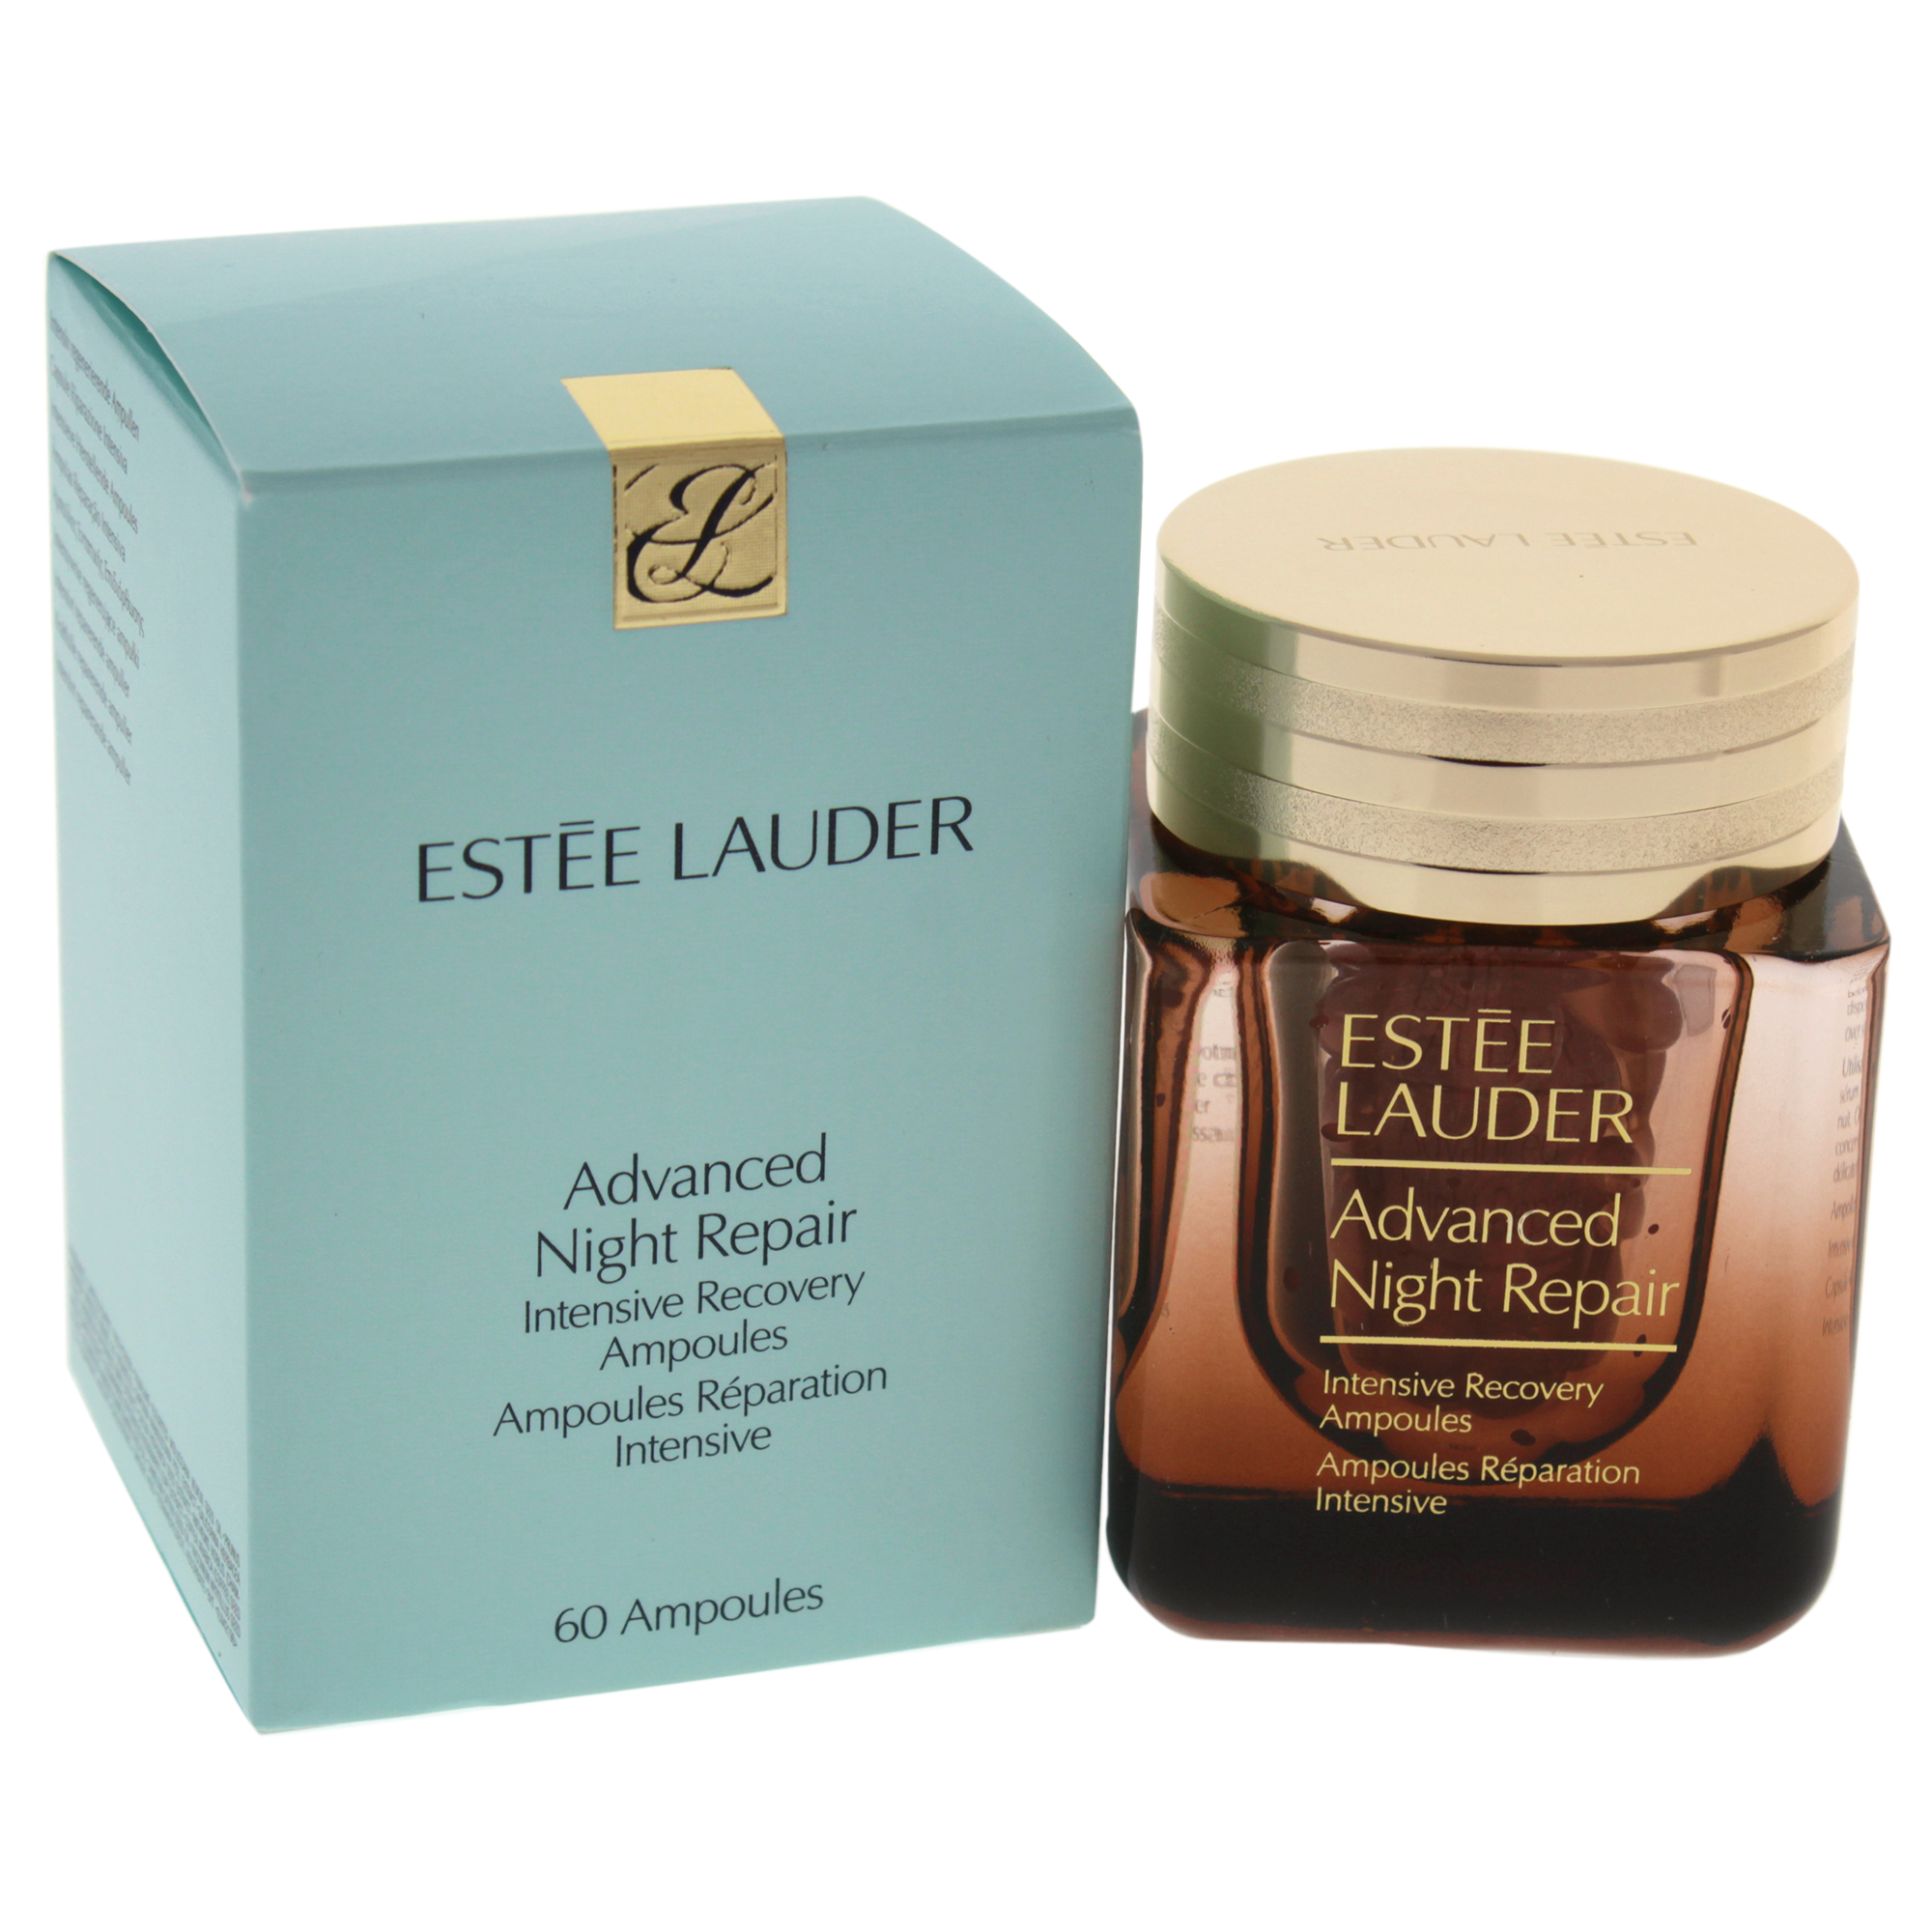 Advanced Night Repair Intensive Recovery Ampoules by Estee Lauder for Women - 60 Count Treatment